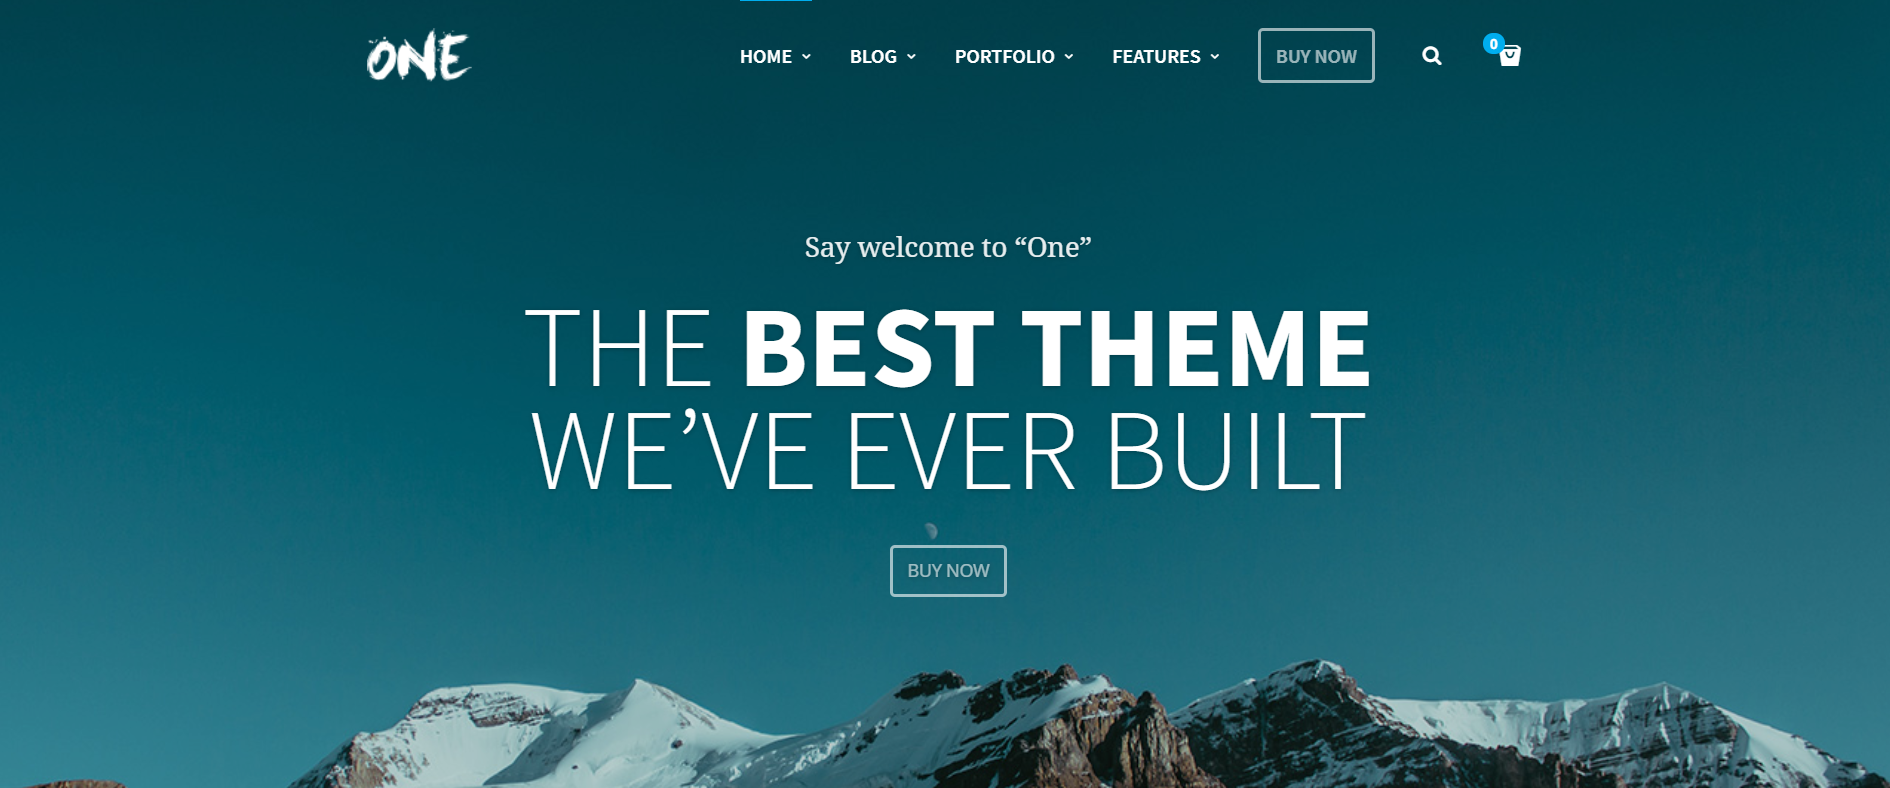 Alps   13 Best WordPress Themes For All Types Of Blogs & Websites